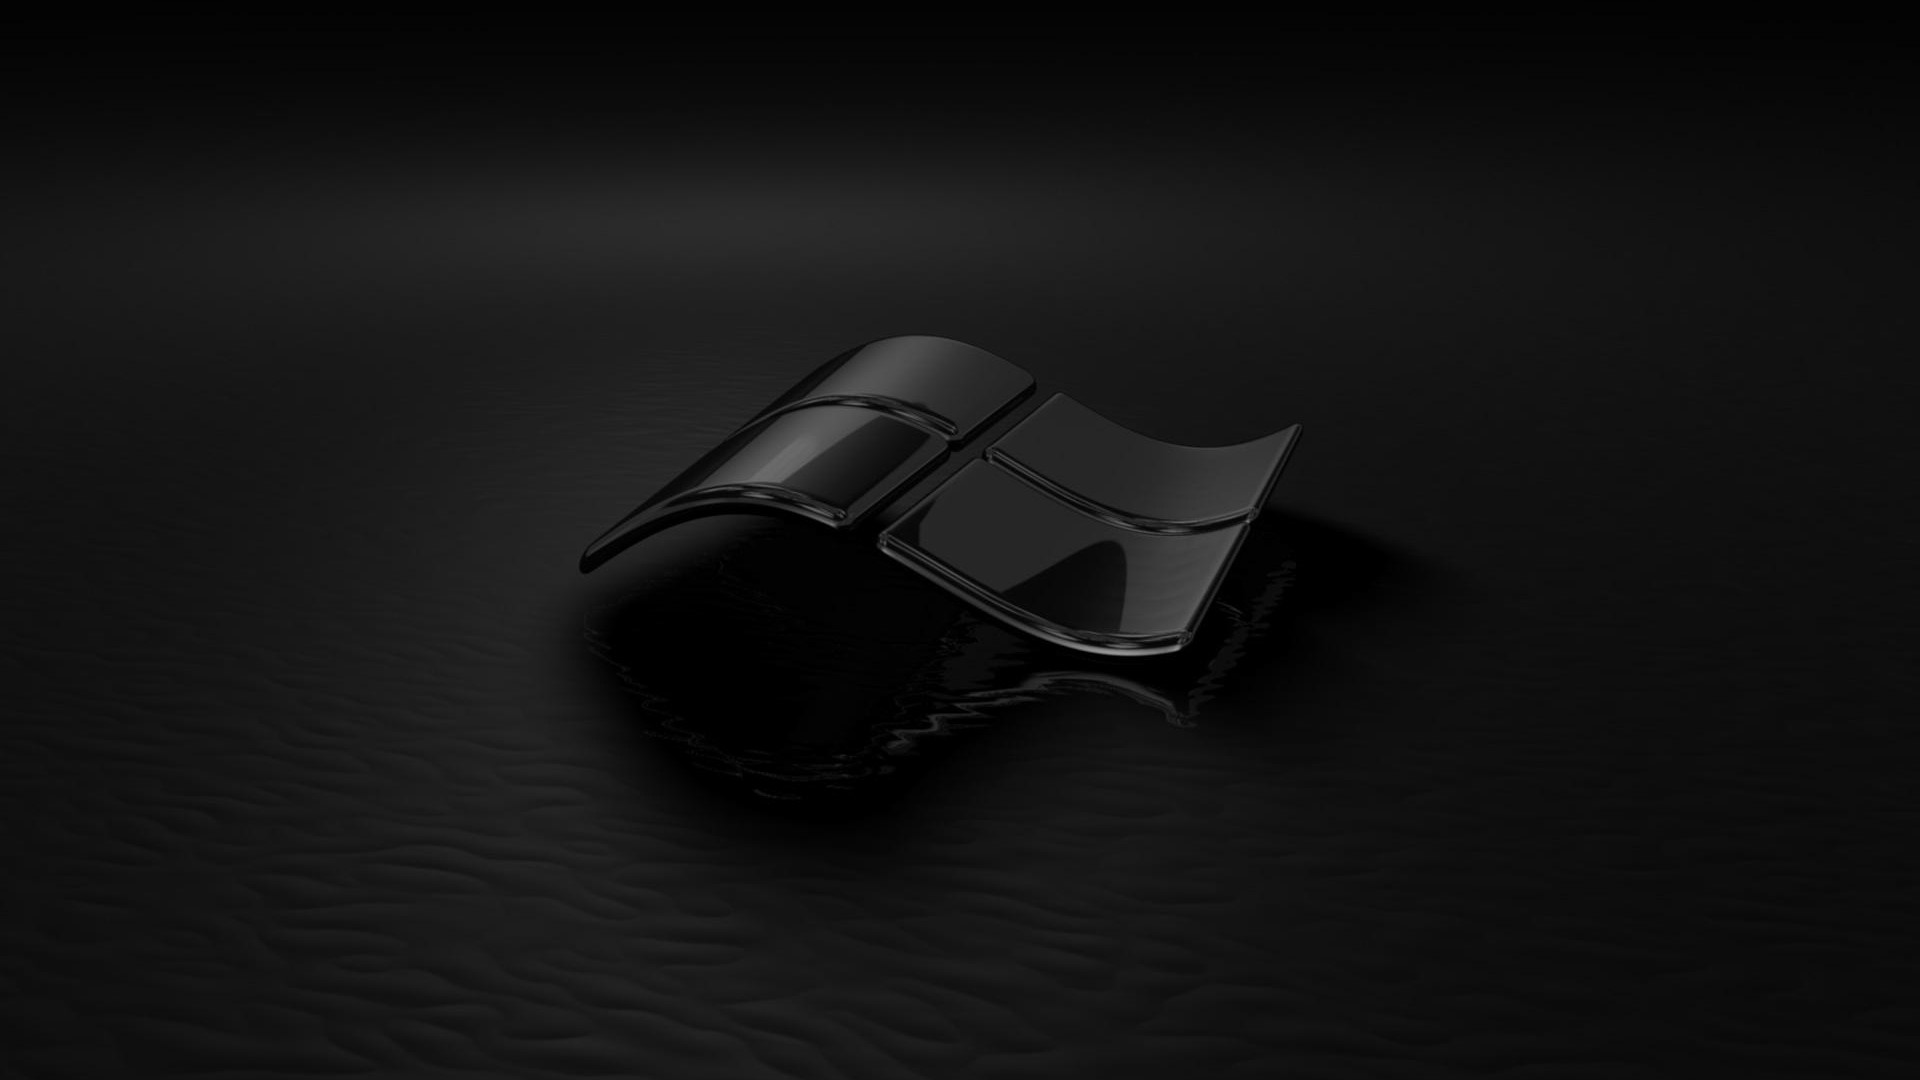 Black Windows 7 Wallpaper 76 Images